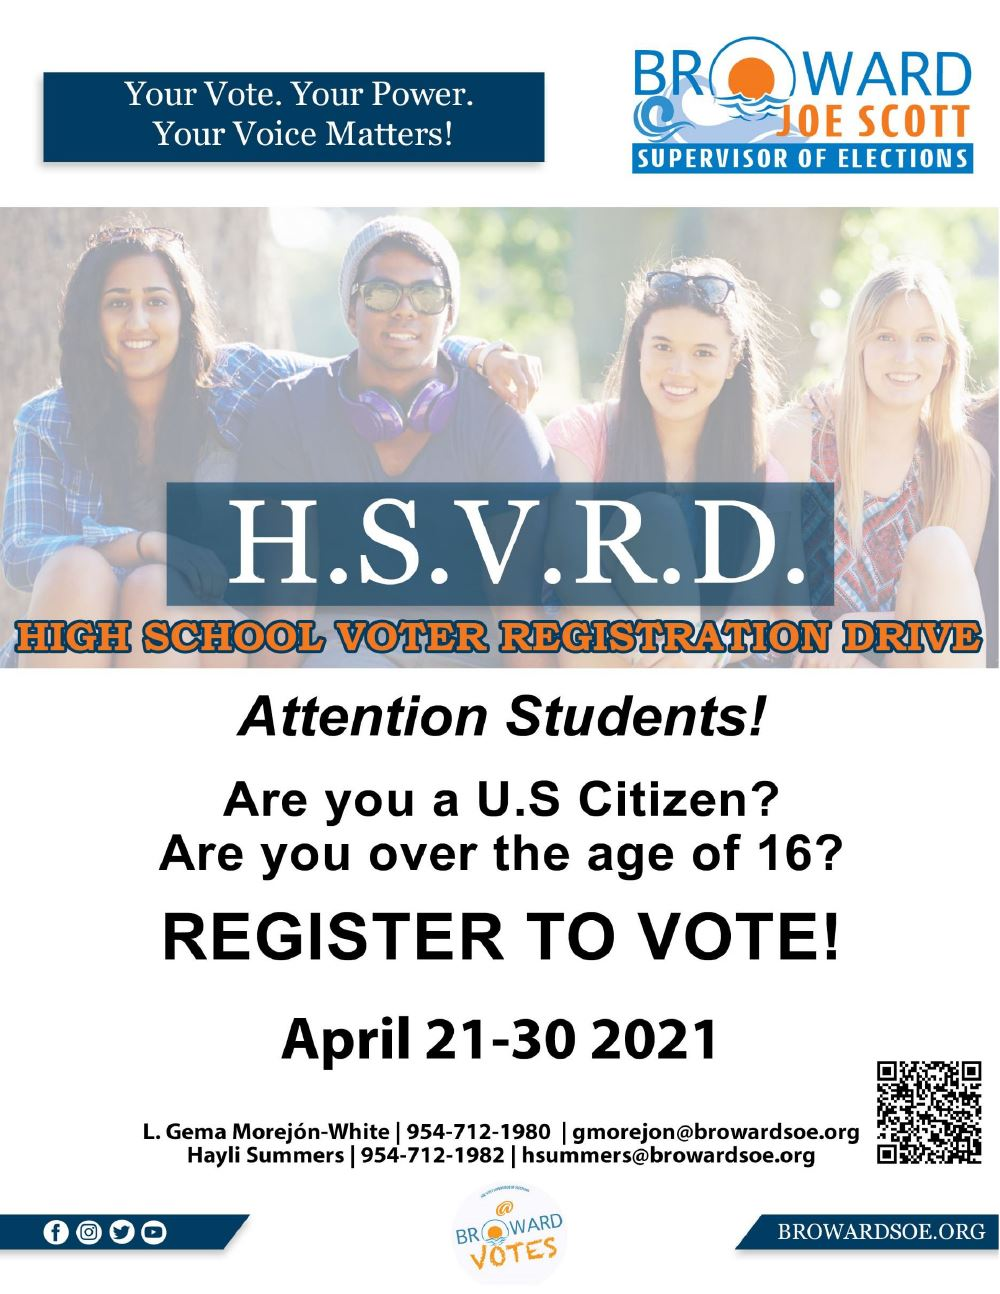 HSVRD Online Voter Registration Instructions